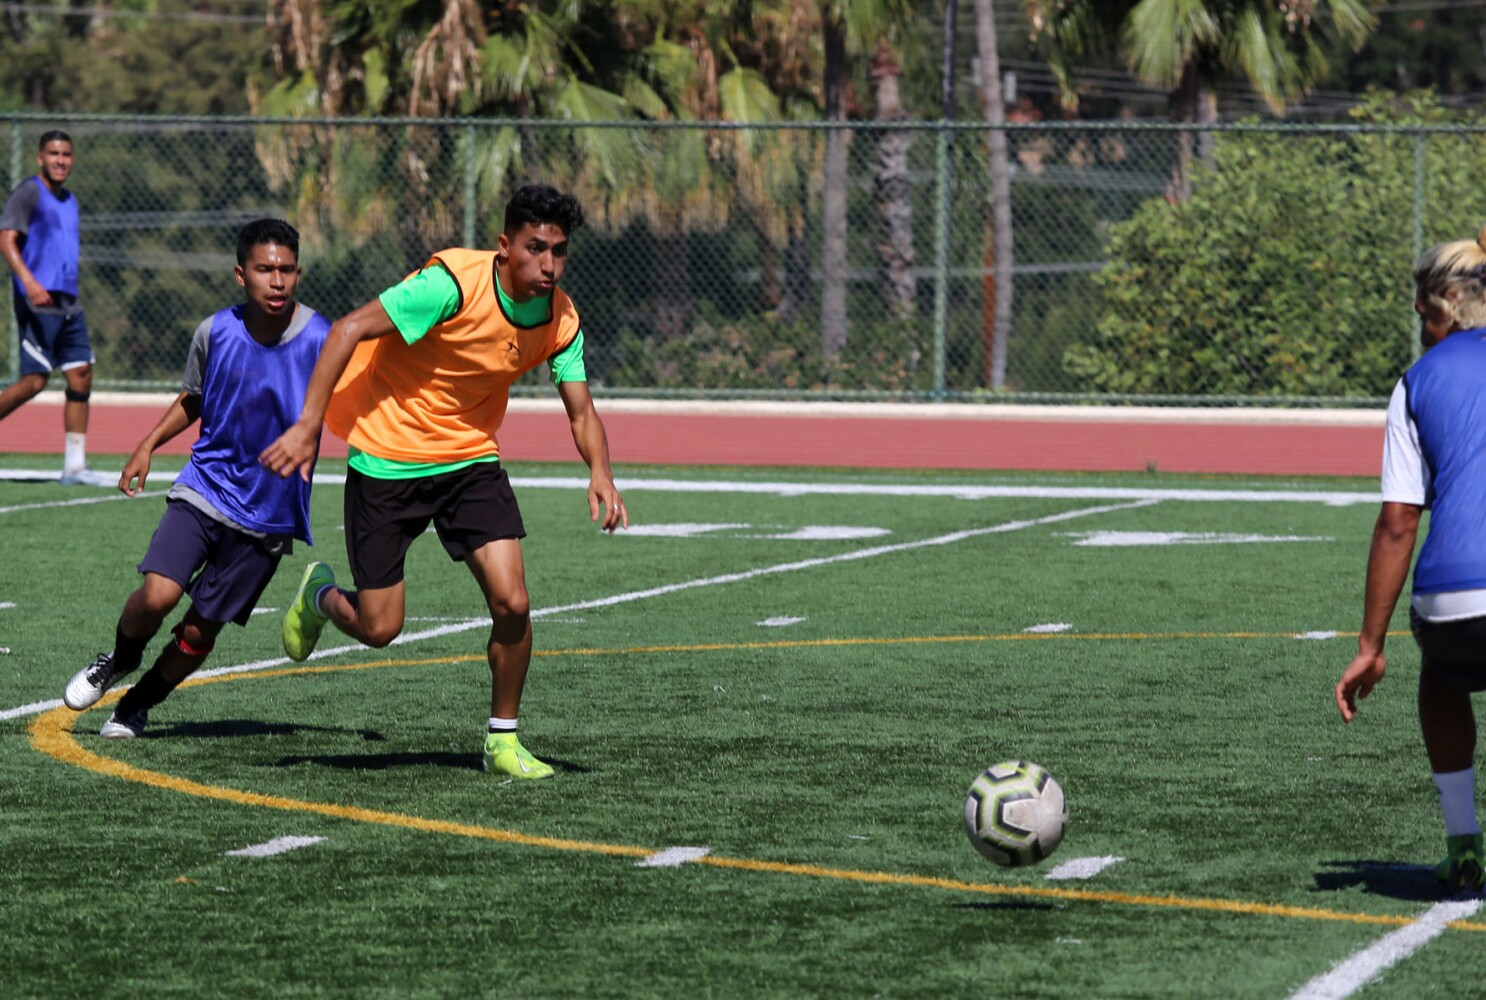 Glendale Community College Fall Previews: Soccer, volleyball teams looking to make strides